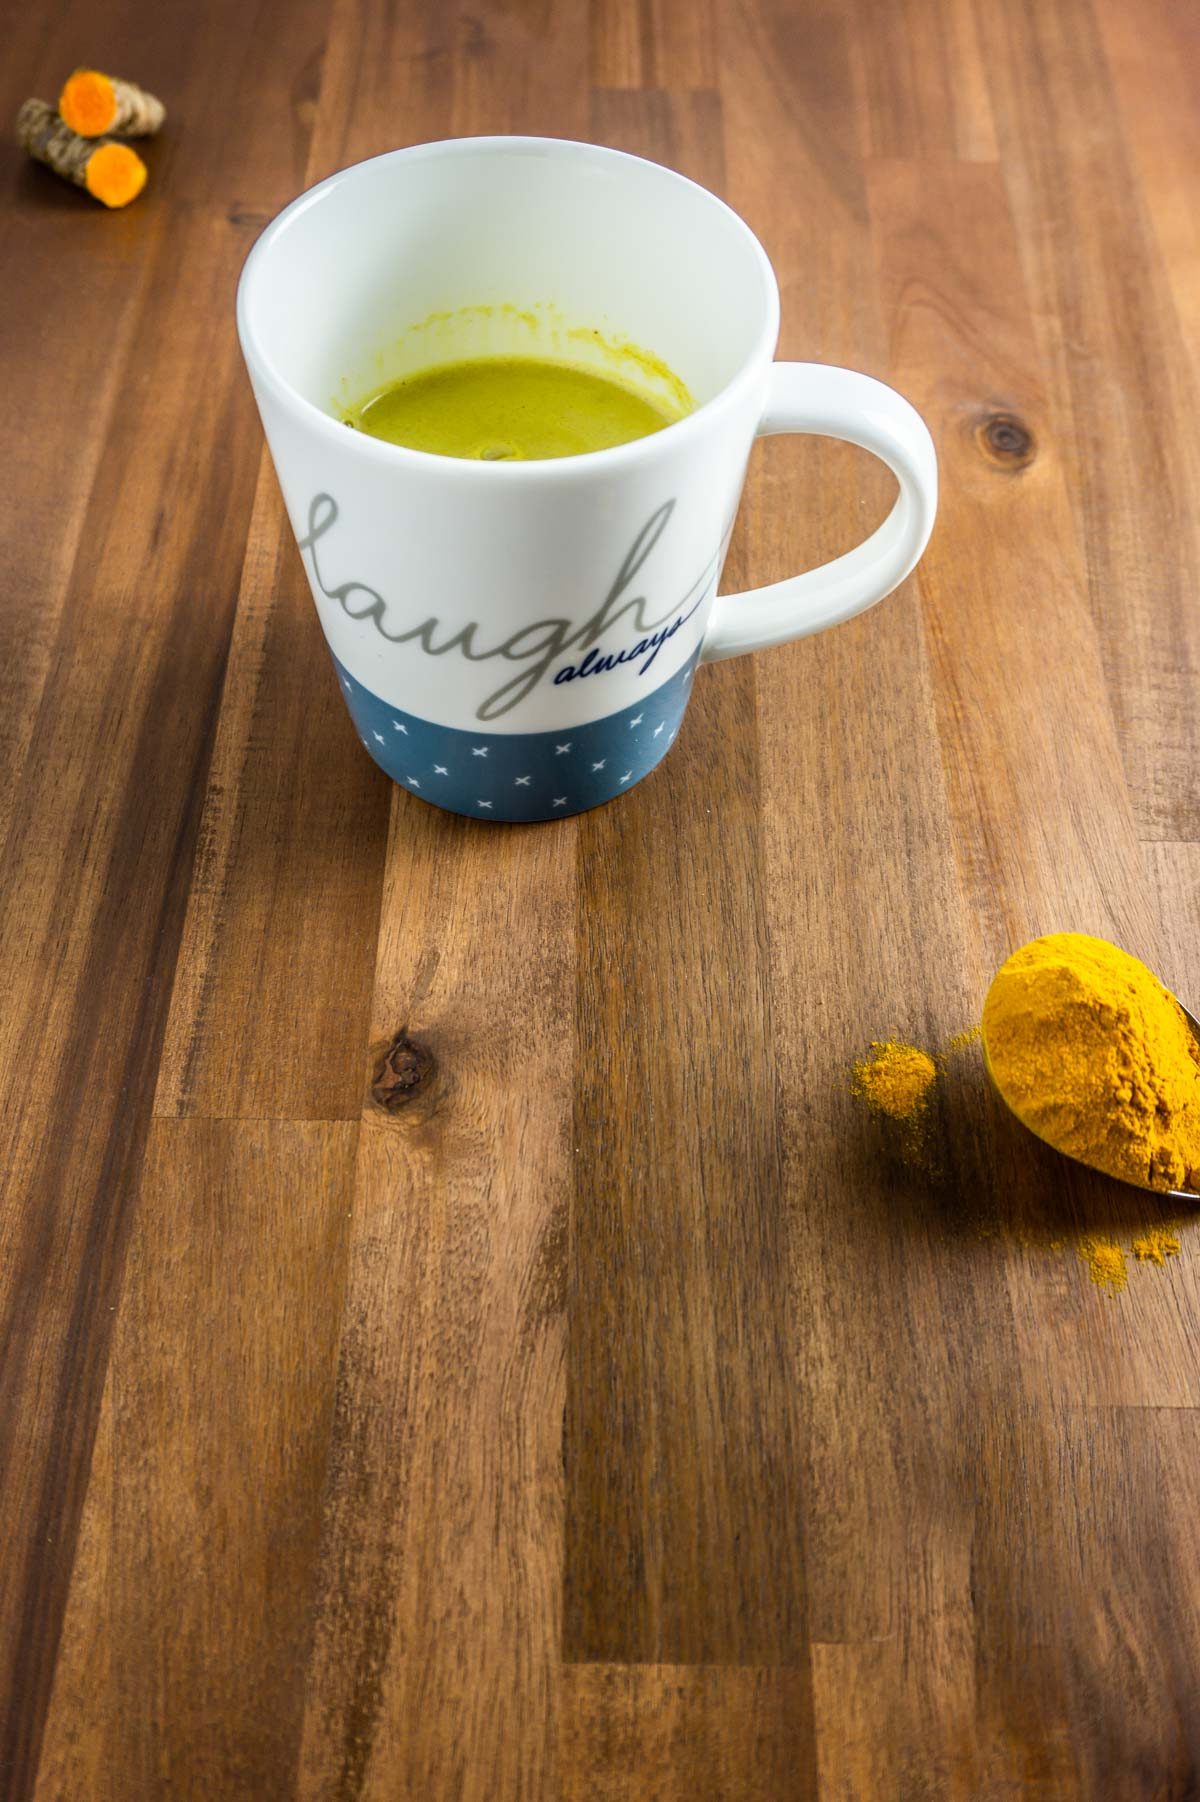 Golden latte on a wooden surface with turmeric on a spoon